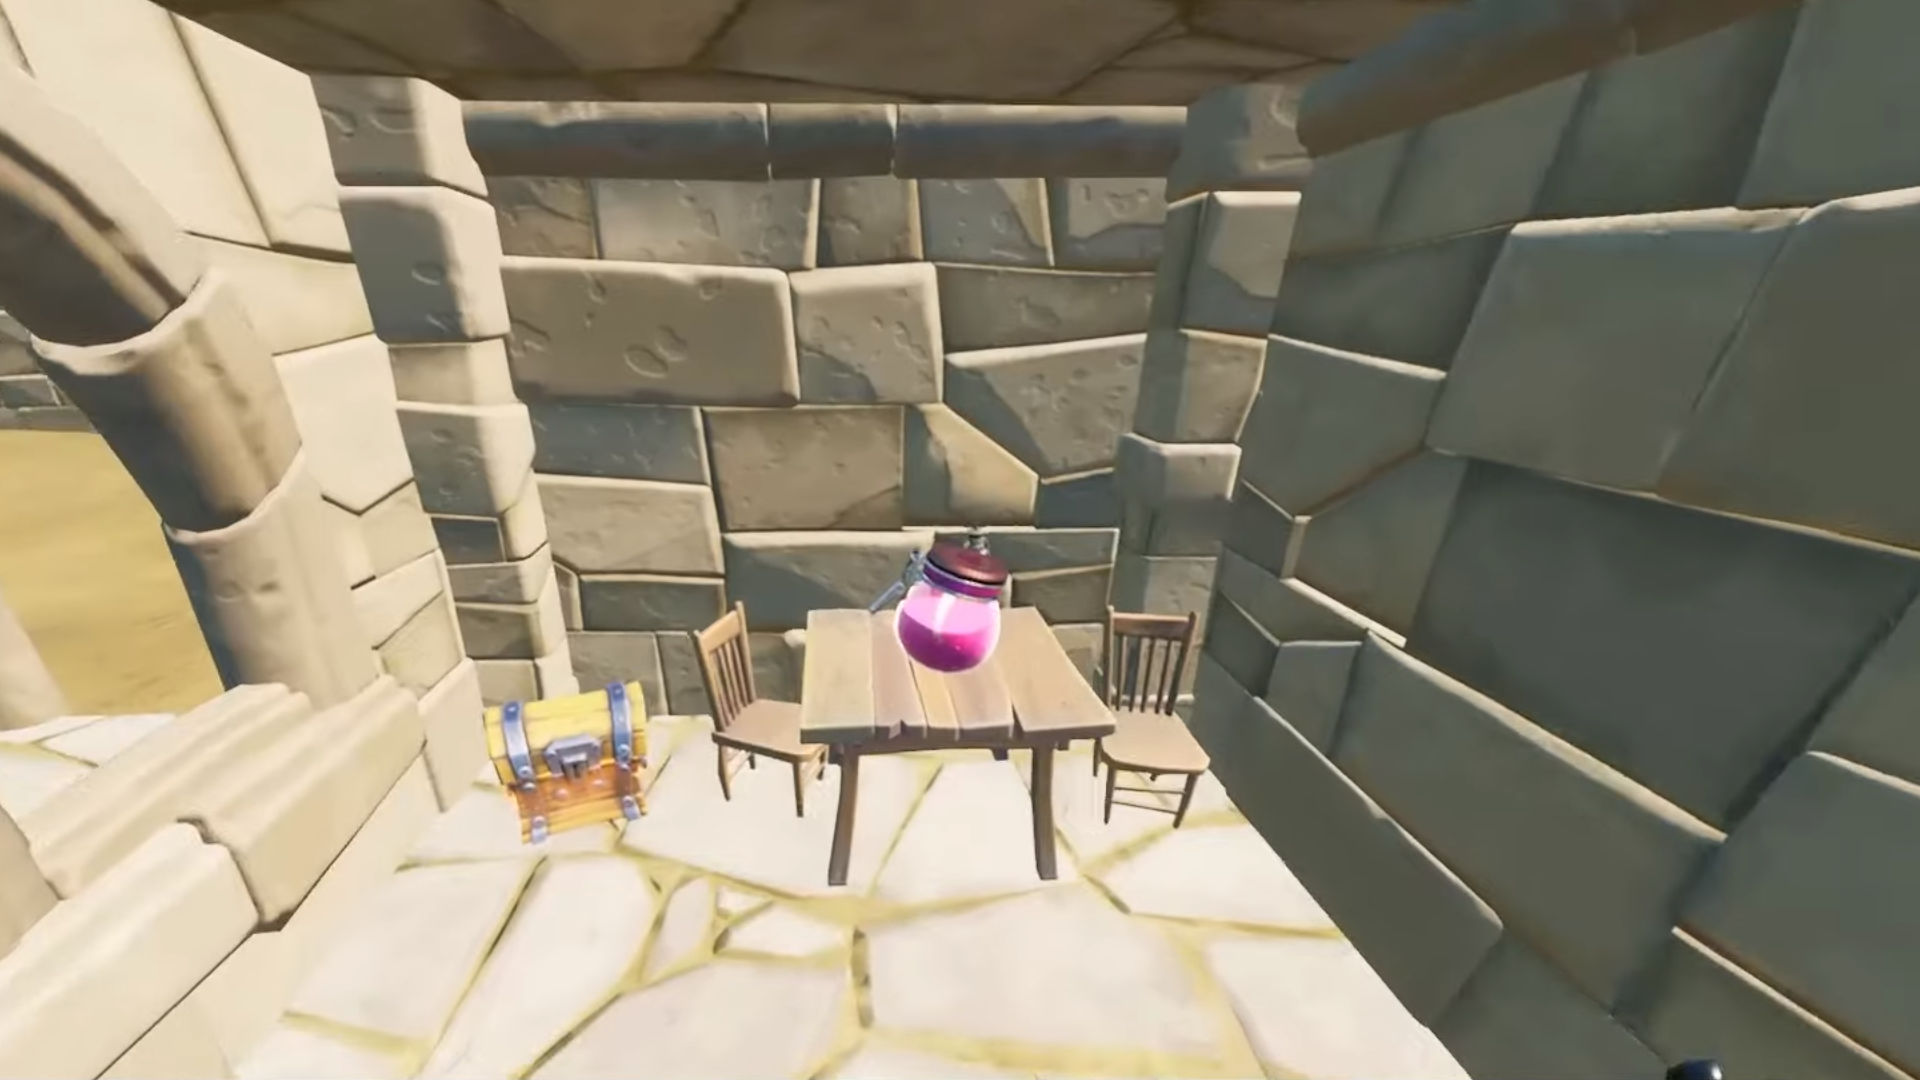 Where to find a love potion in Fortnite